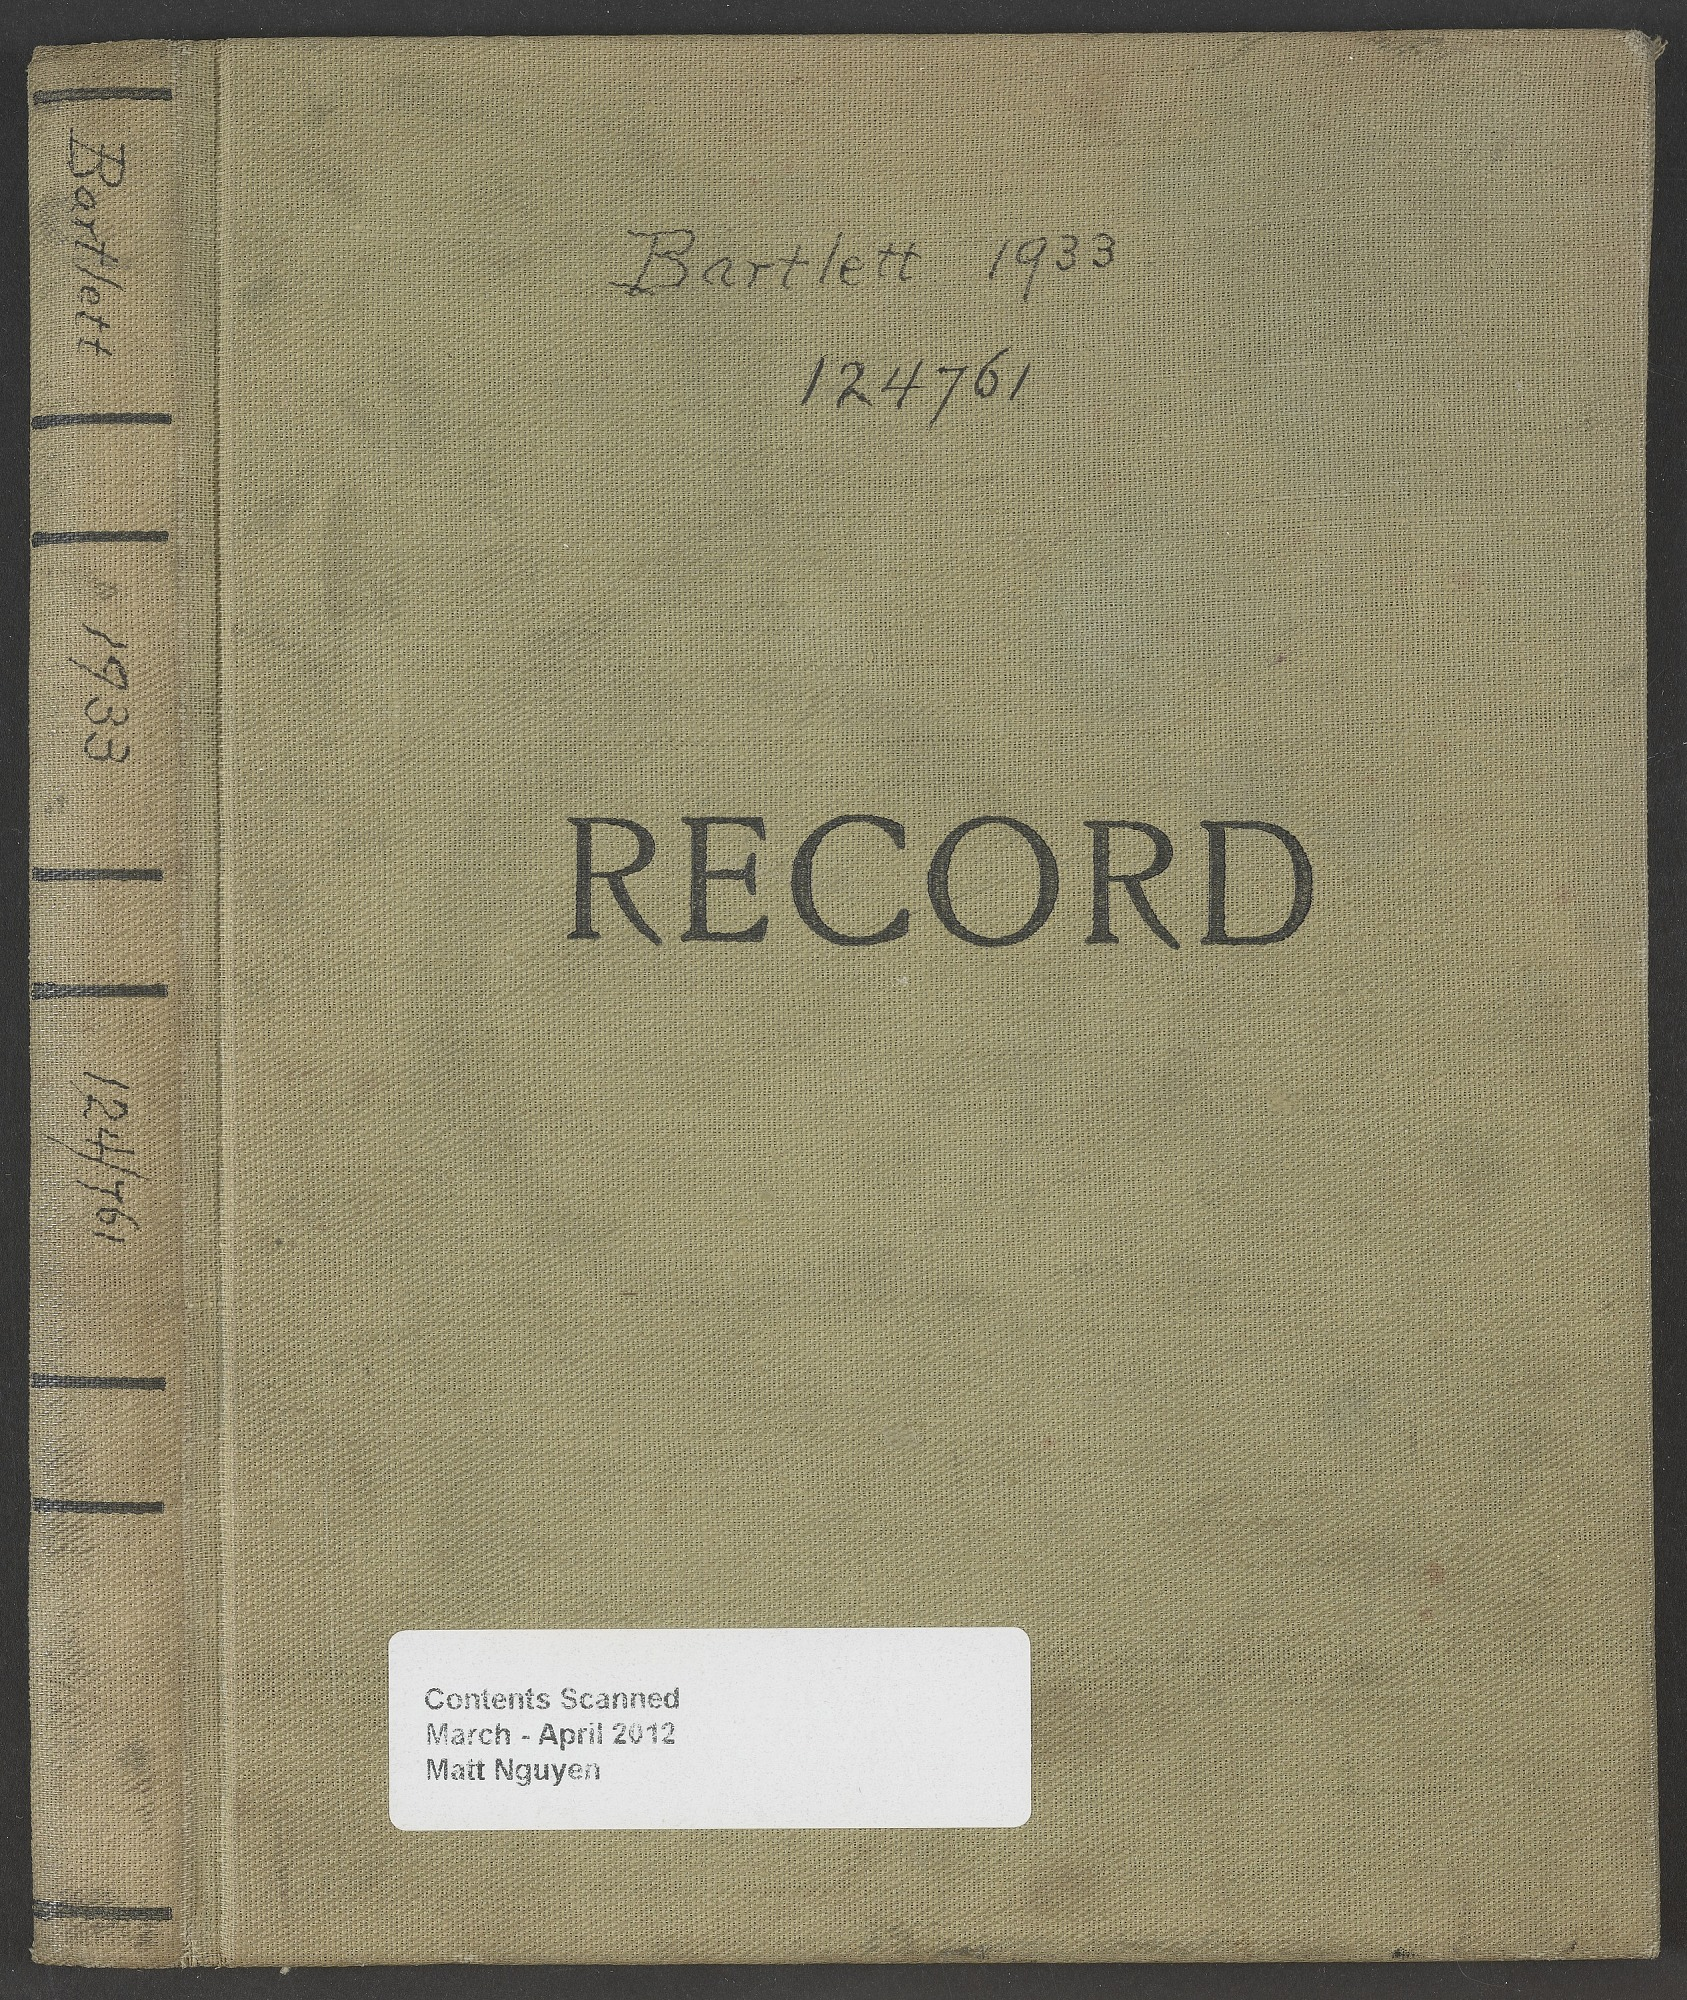 Norcross-Bartlett Expedition, Foxe Basin and vicinity (Accession 124761), 1933.